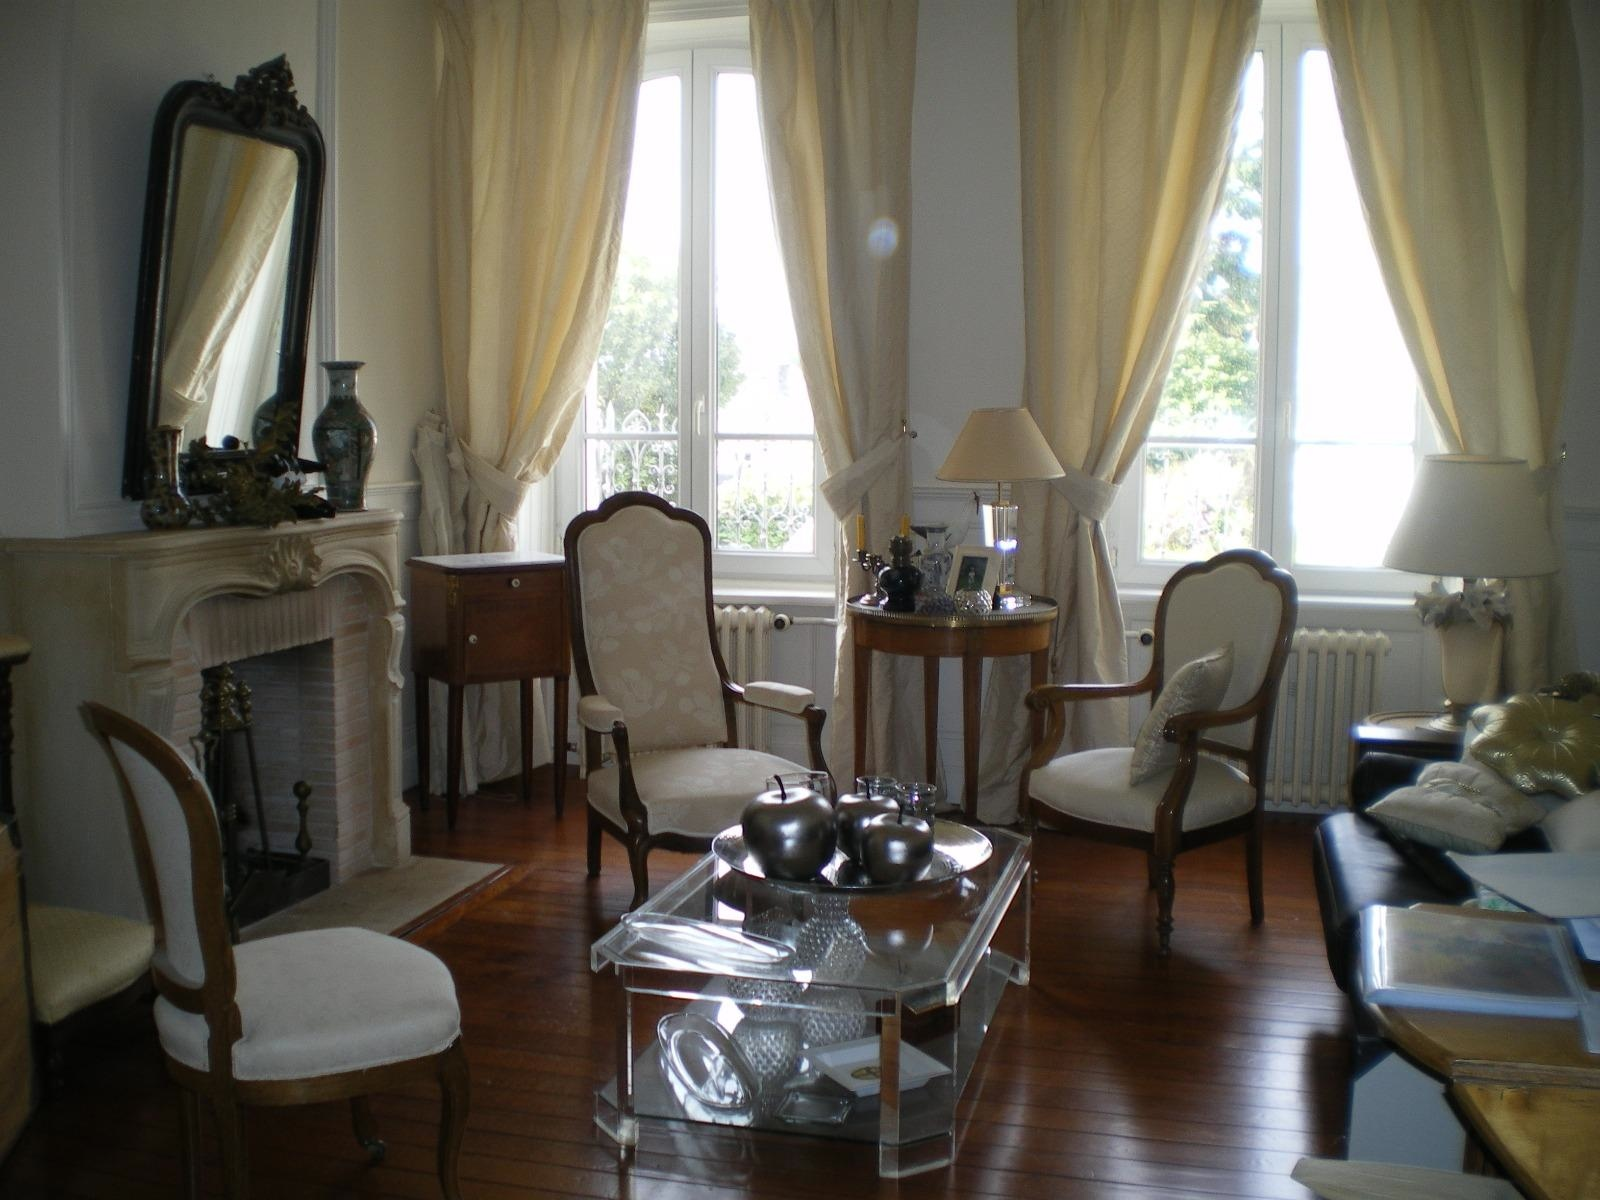 Belle maison bouctot immobilier for Agence immobiliere cherbourg